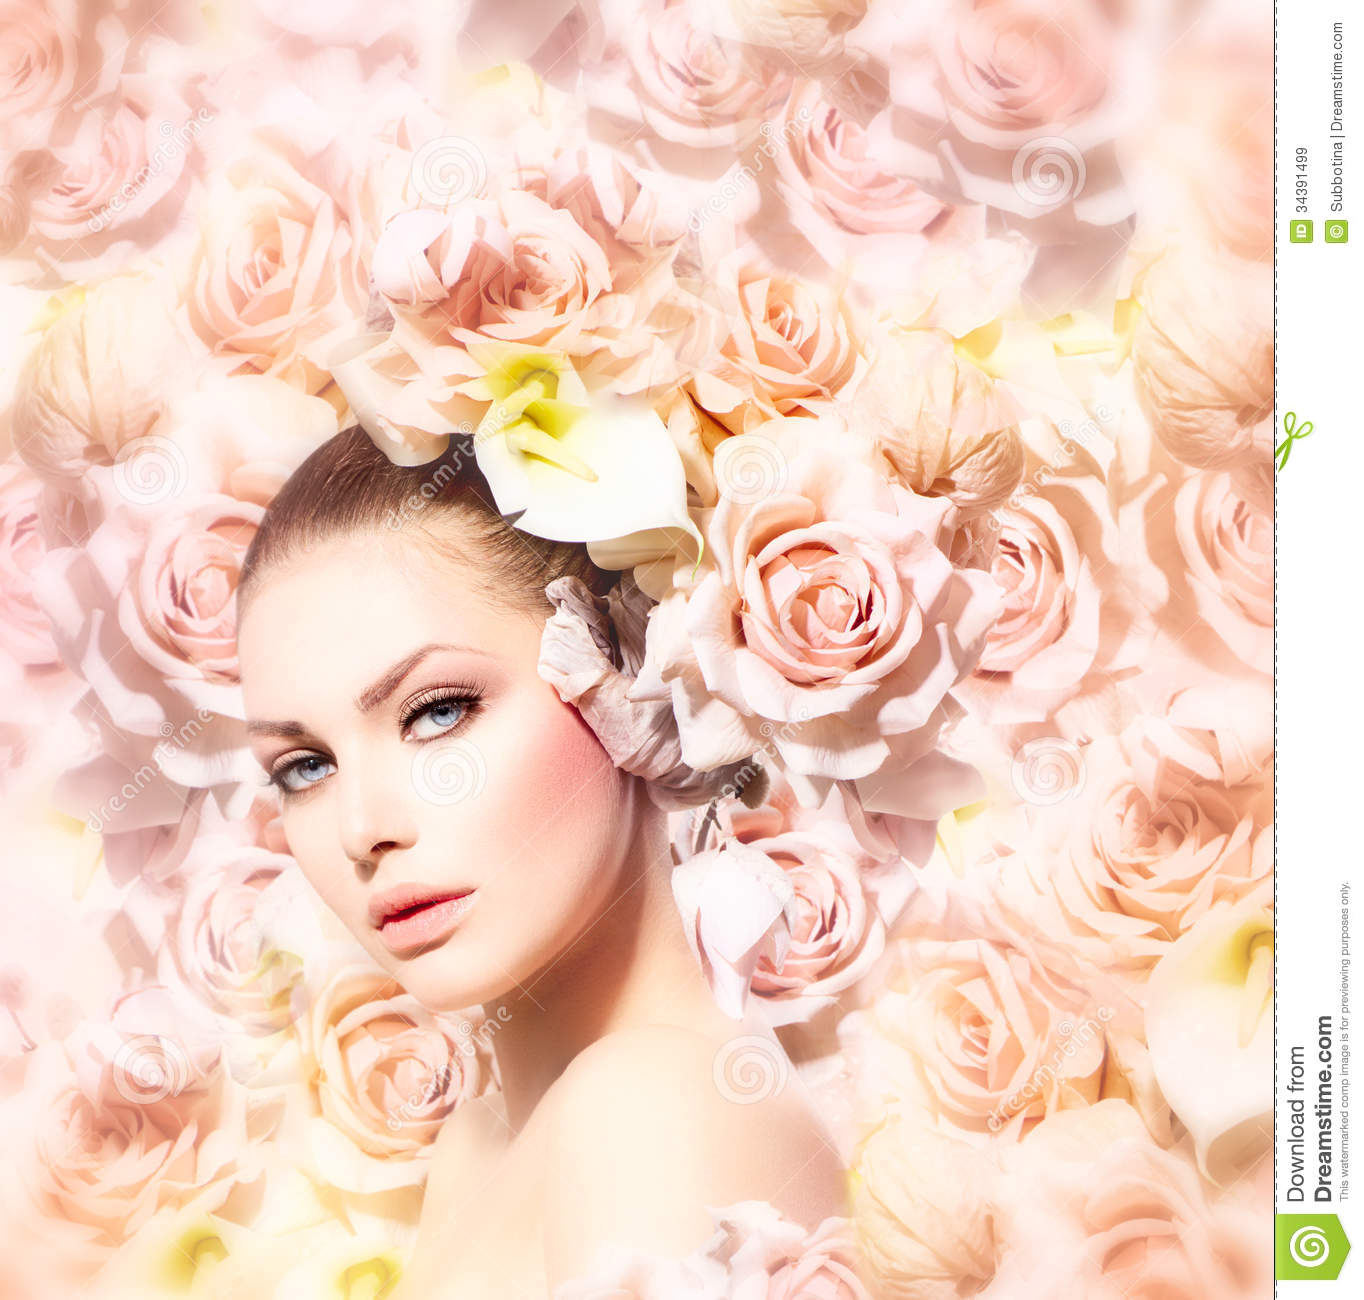 Beauty Model Girl With Flowers Stock Image